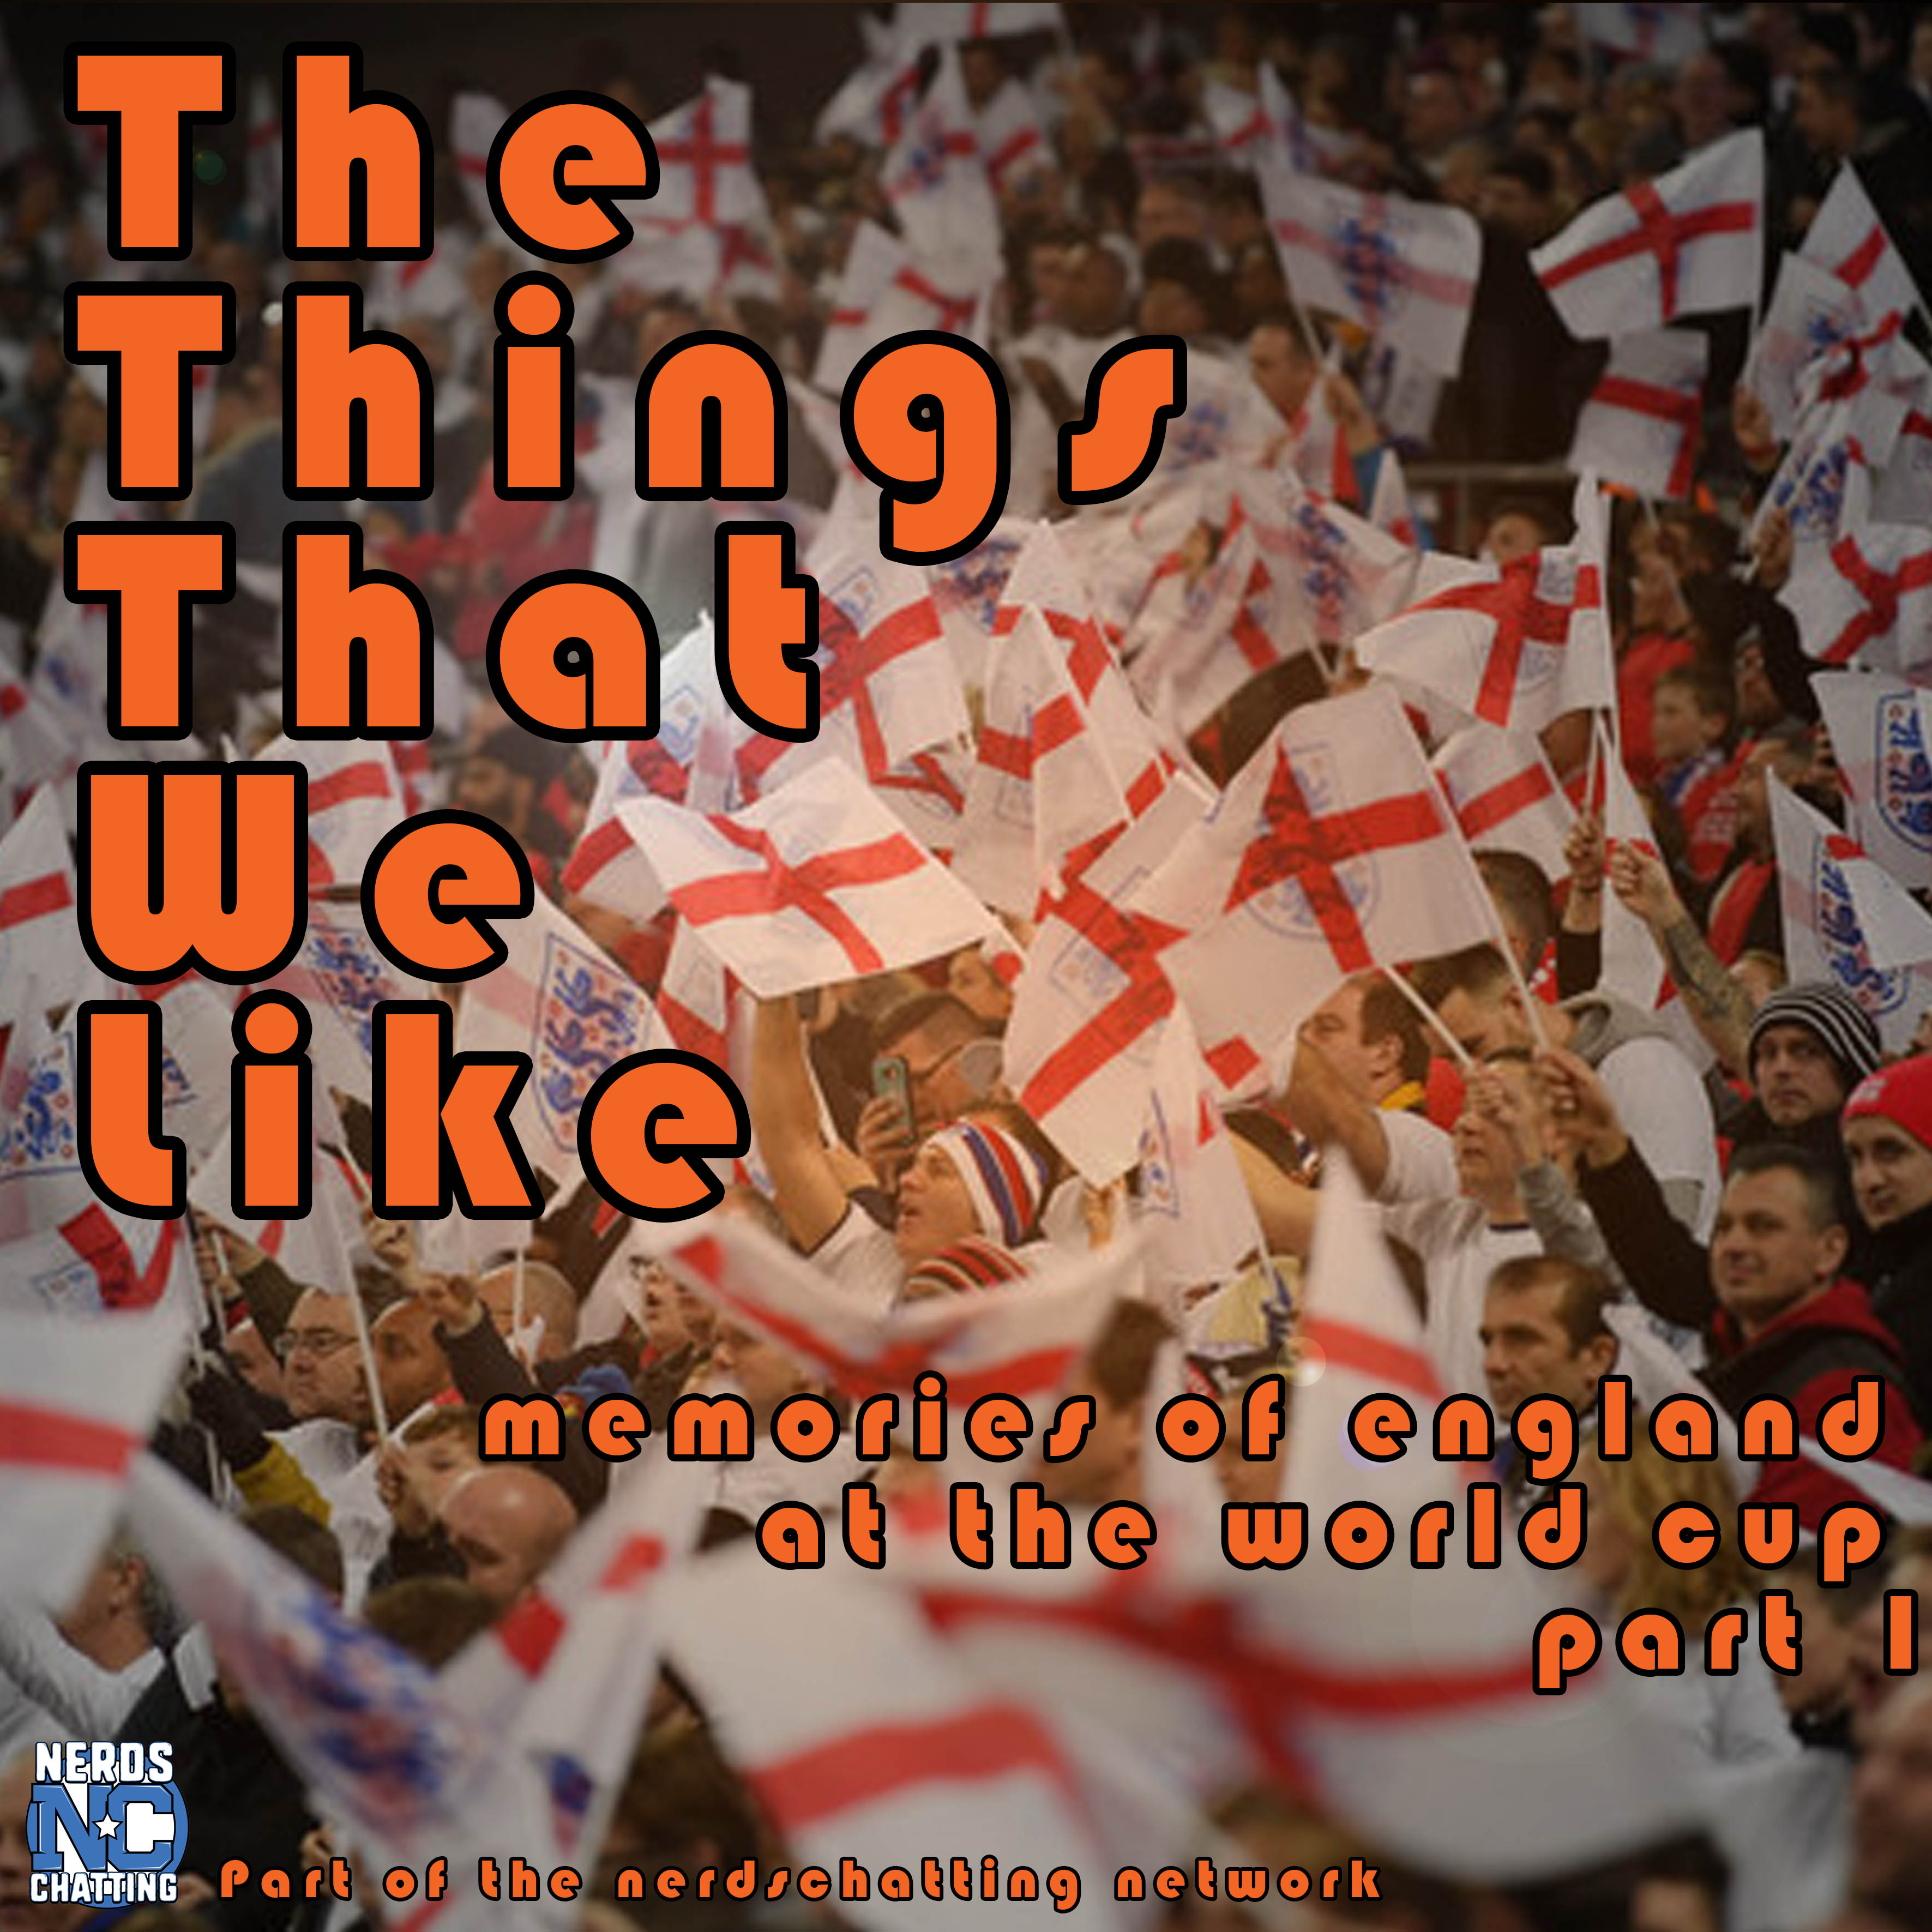 the things that we like episode 1 - memories of england at the world cup part 1